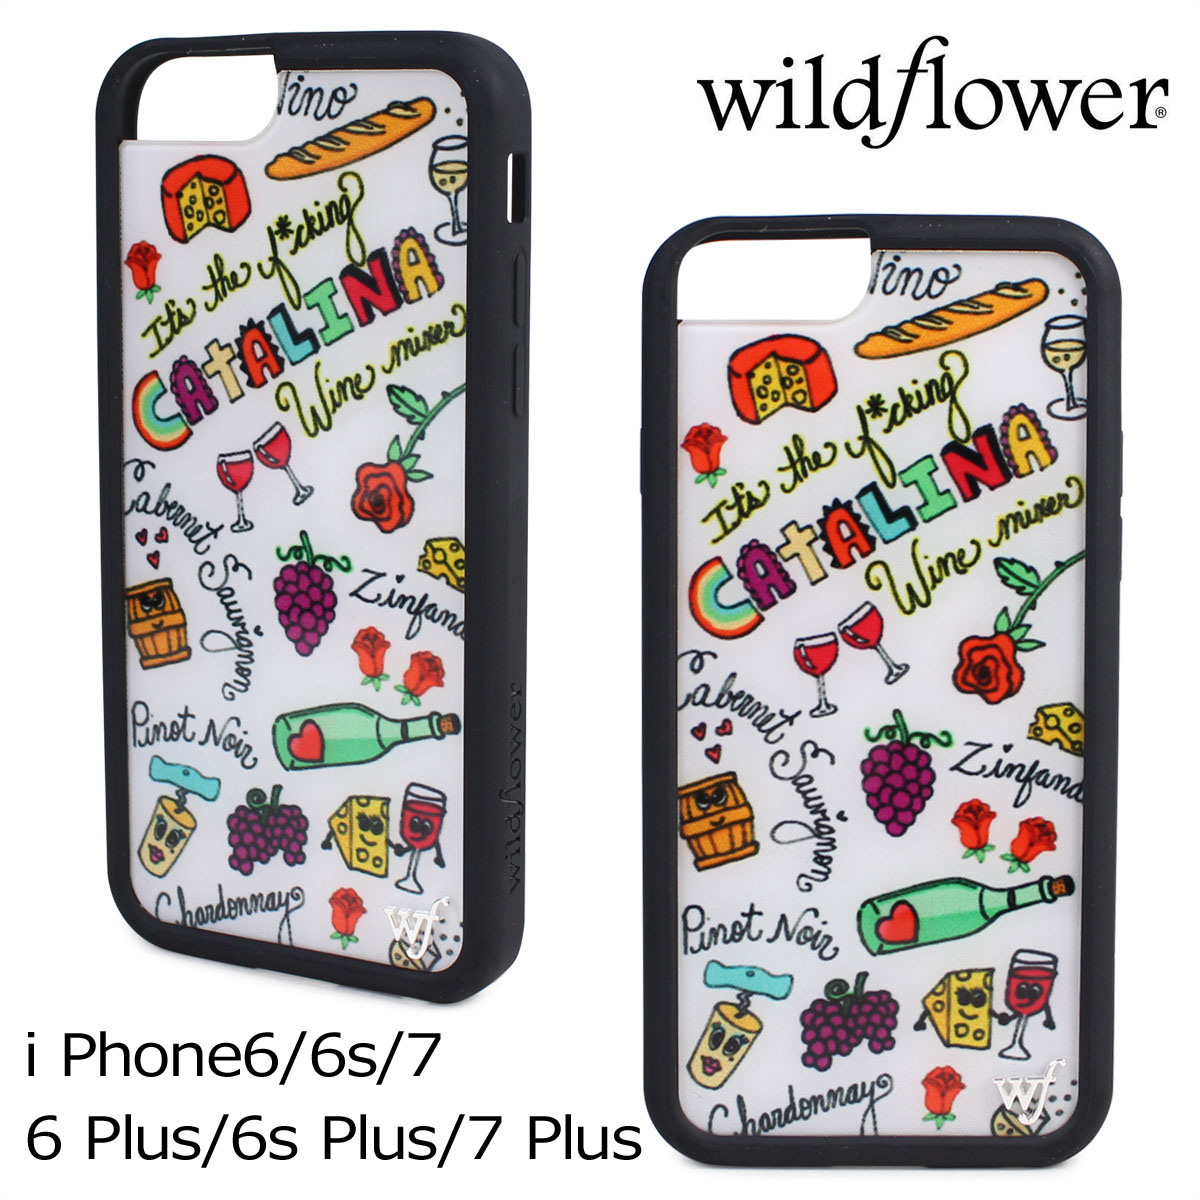 size 40 e6d94 ad524 wildflower iPhone8 7 iPhone 6 6s wild flower case Plus smartphone eyephone  Lady's multicolored WMIX